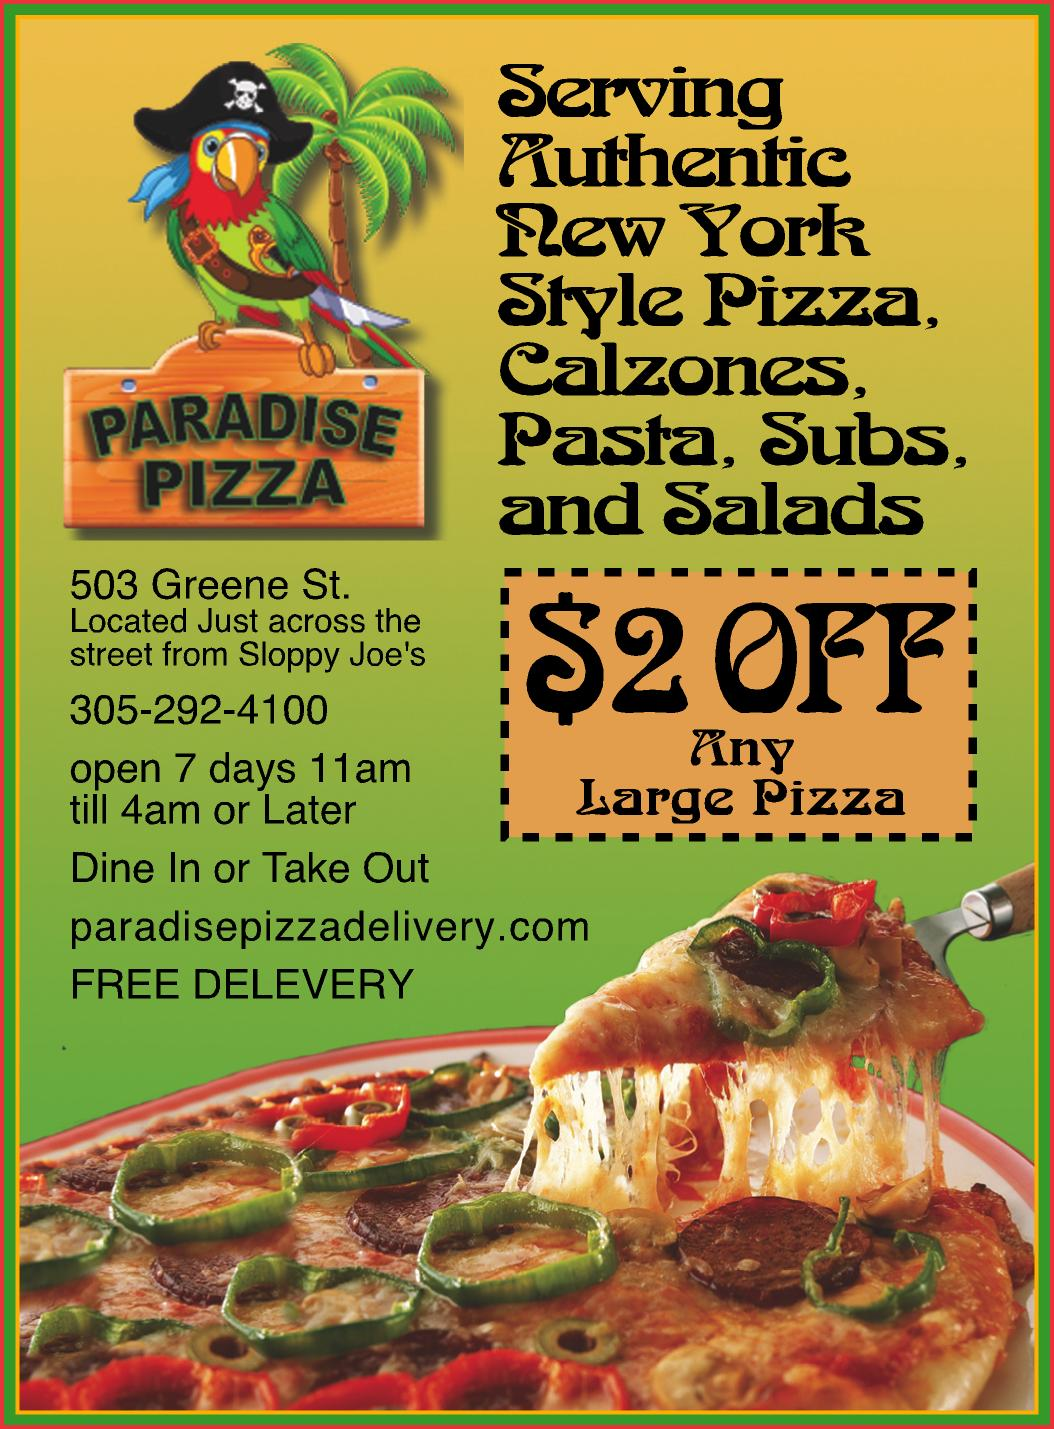 Paradise Pizza, Key West